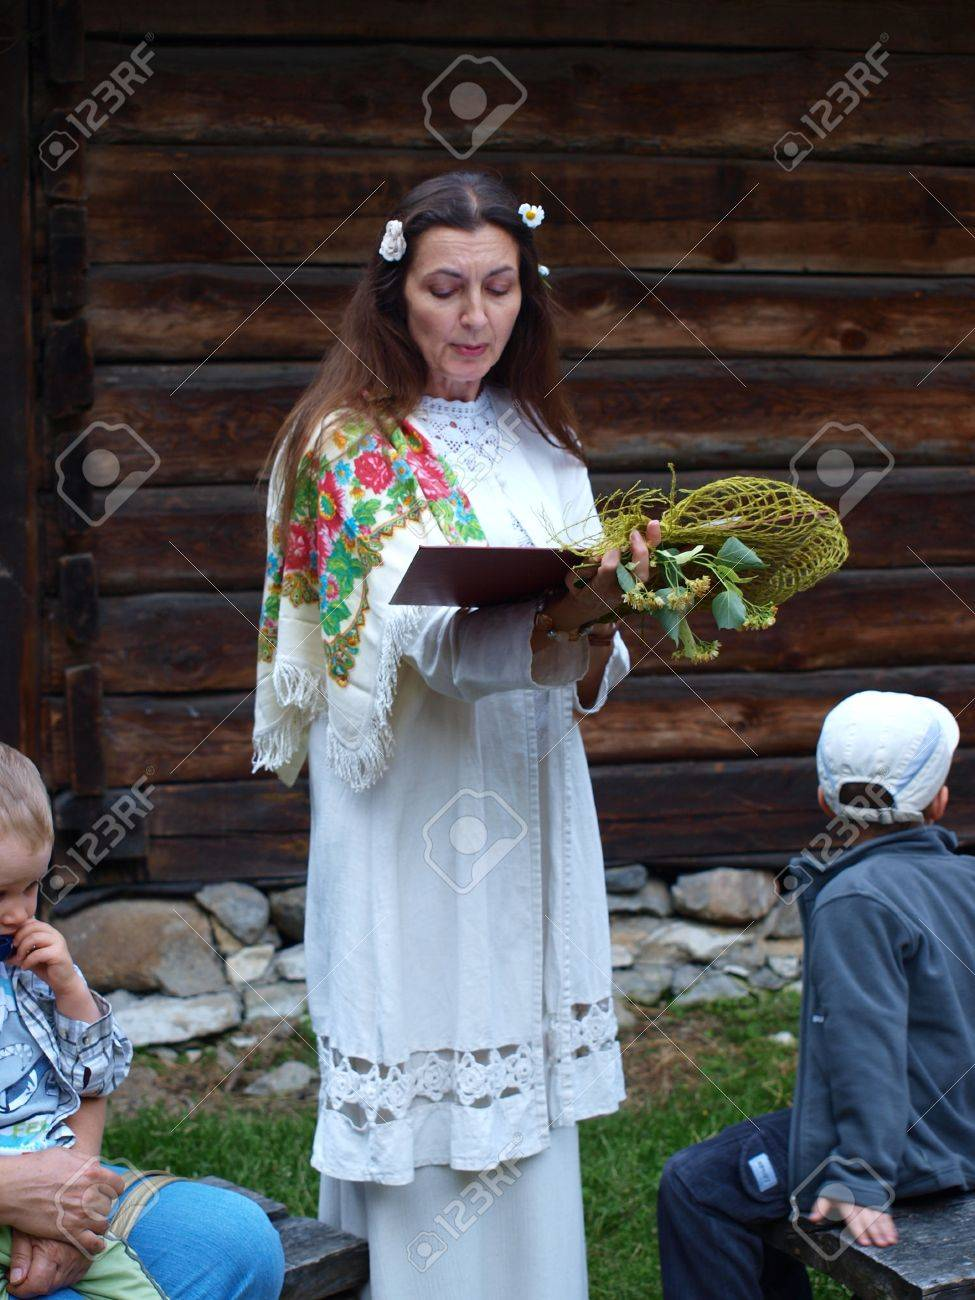 Reading fairy tales and legends connected with the Night of St. John. Night of St. John, an old Polish (and Slavic) folk event, June 24th 2011, Open-Air Museum of the Lublin Region Village, Lublin, Poland Stock Photo - 12059474